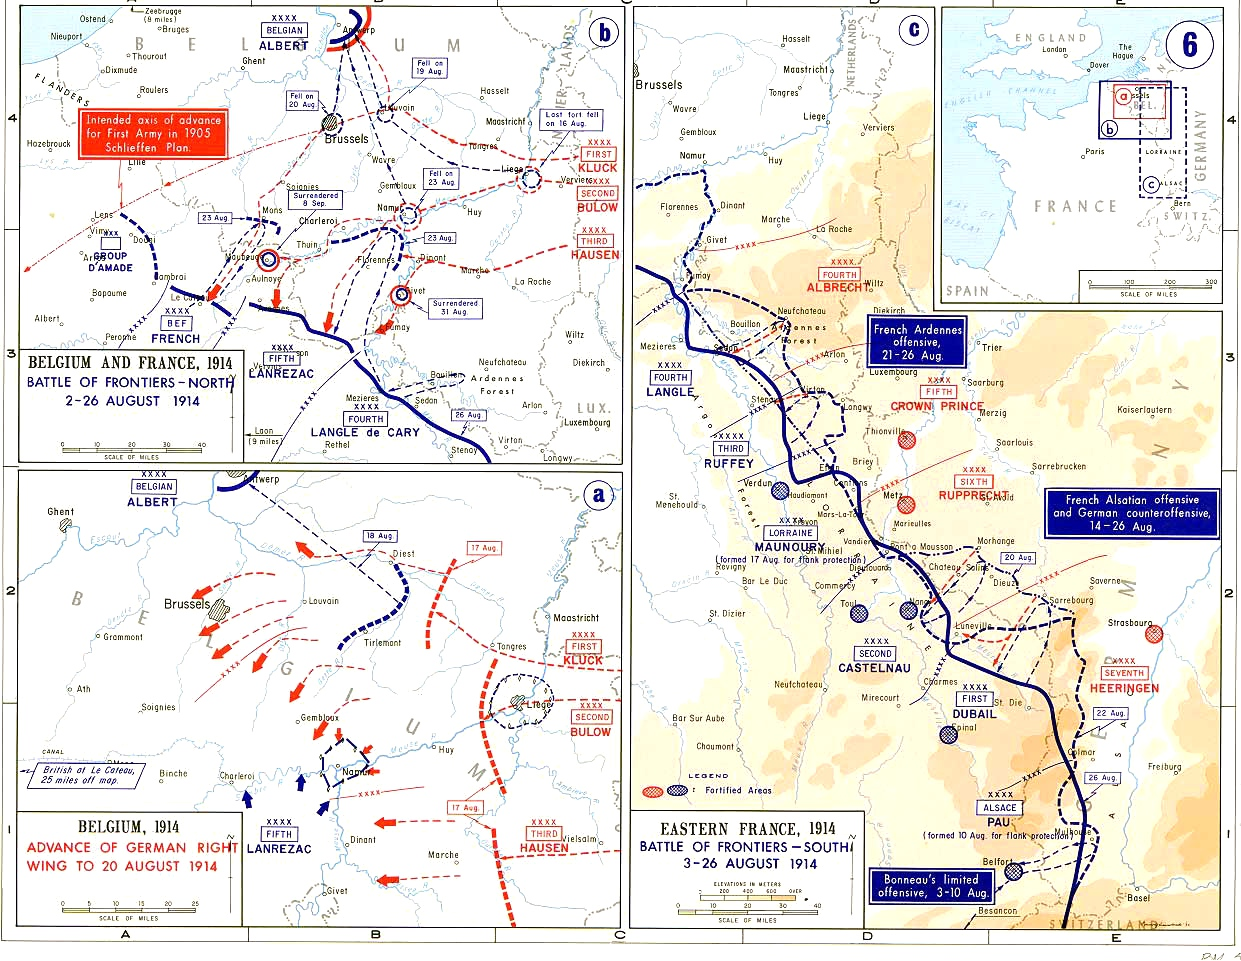 https://i0.wp.com/upload.wikimedia.org/wikipedia/commons/6/6c/Battle_of_Frontiers_-_Map.jpg